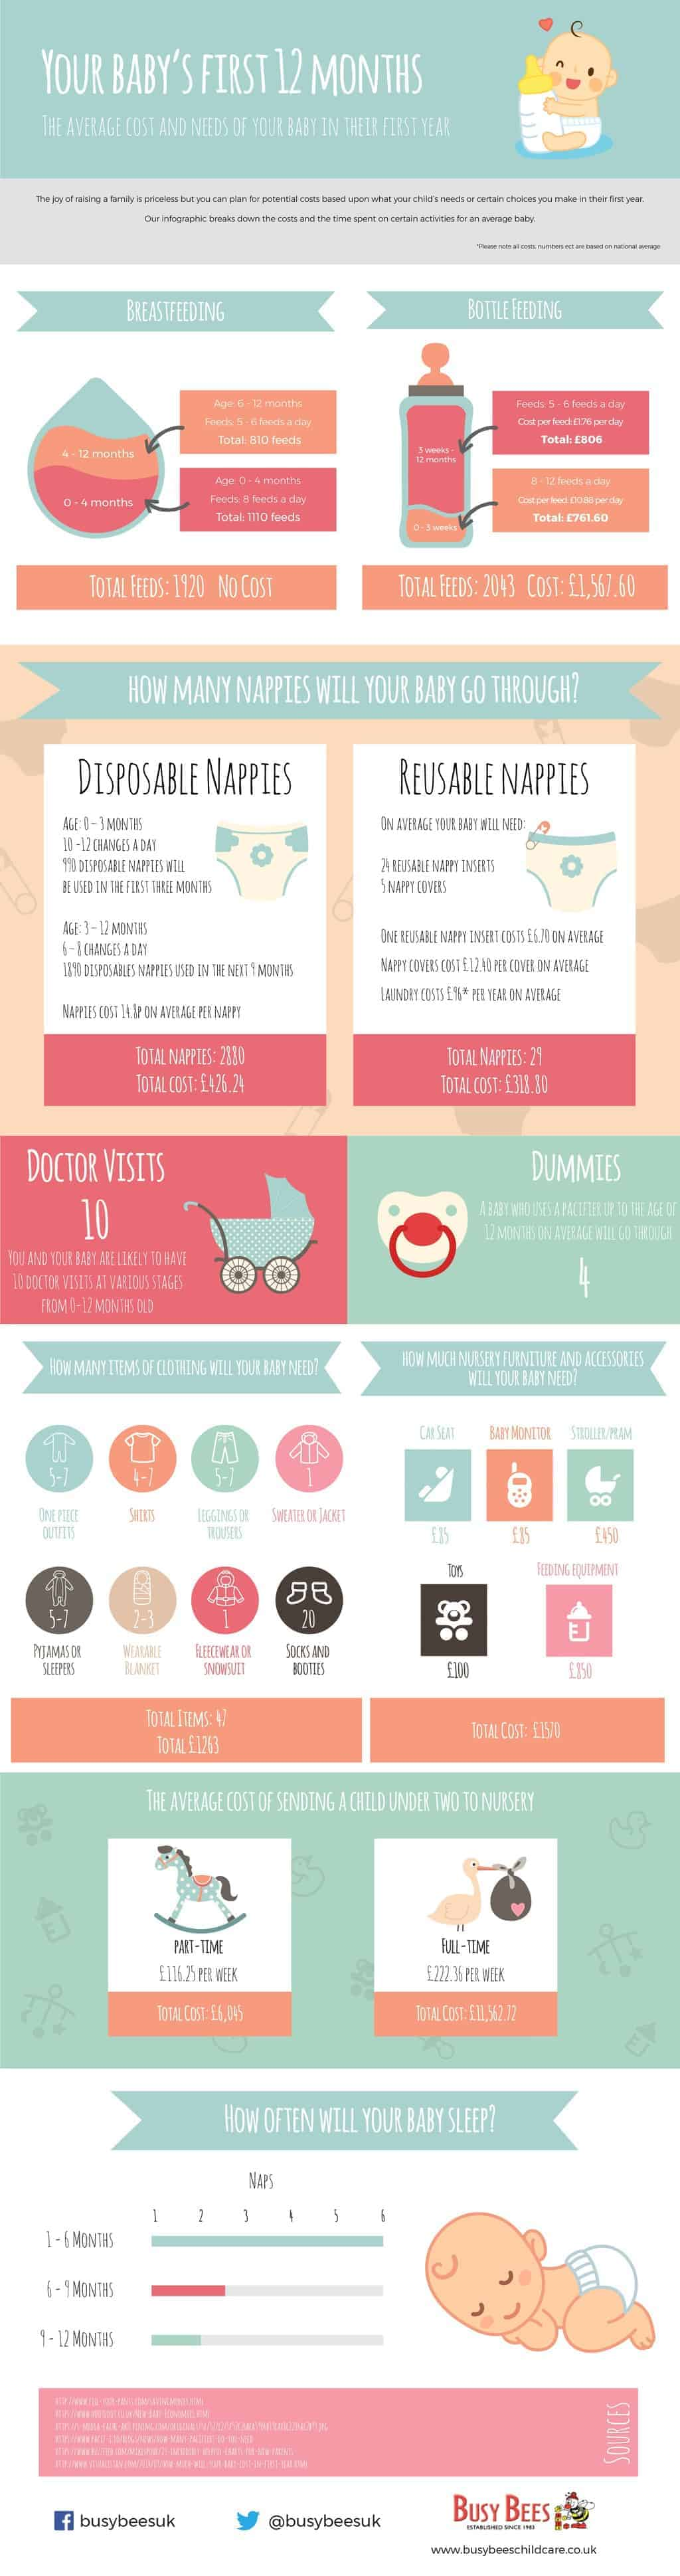 Cost of Baby's First Year